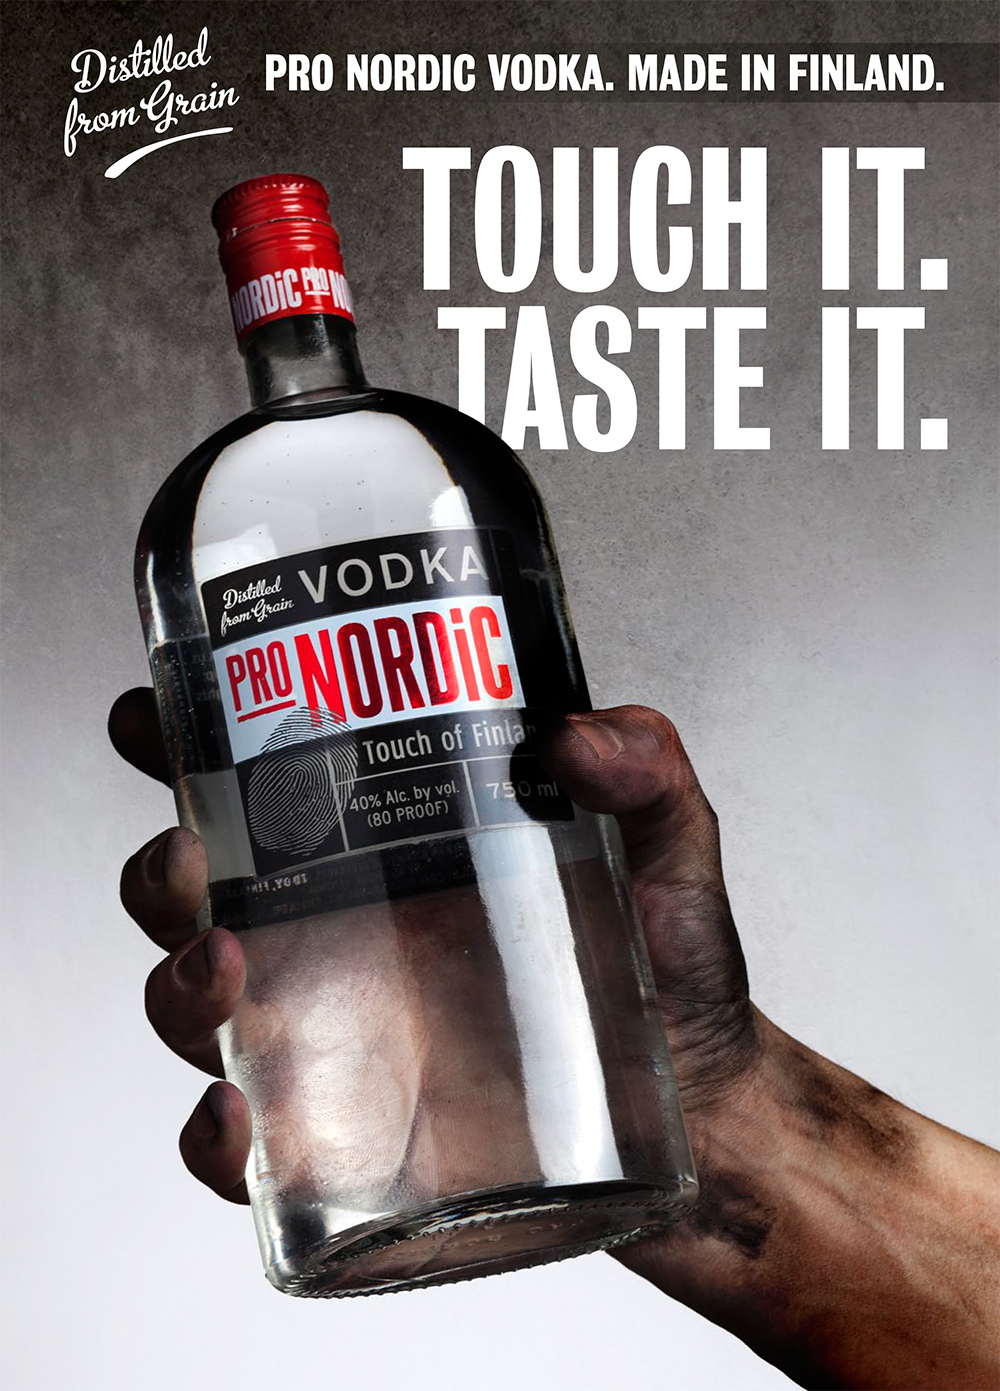 Pro Nordic Vodka consept proposal